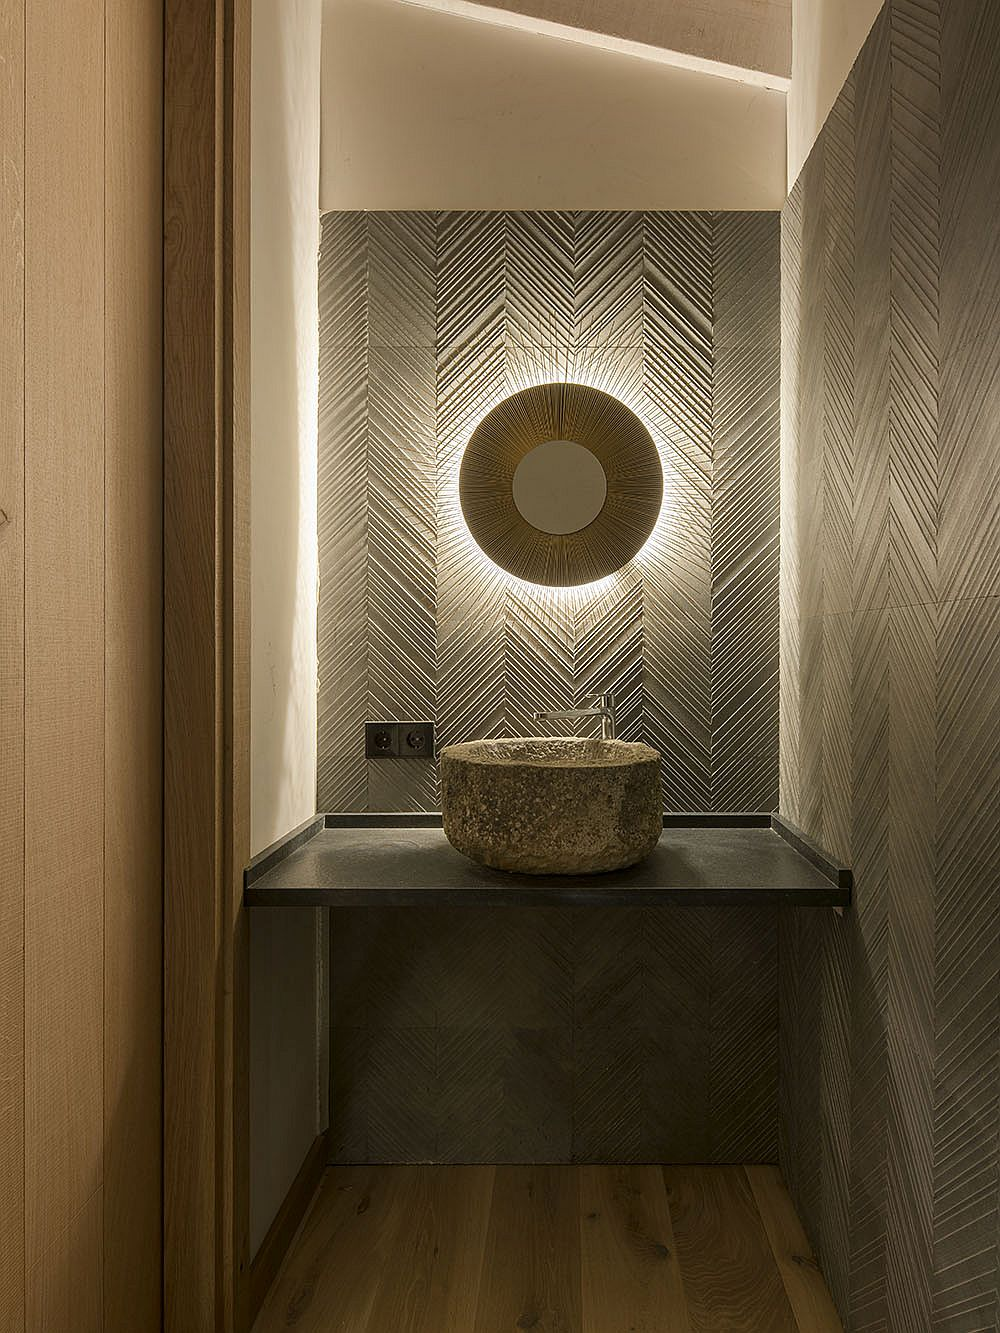 Stunning use of pattern and lighting in the small powder room